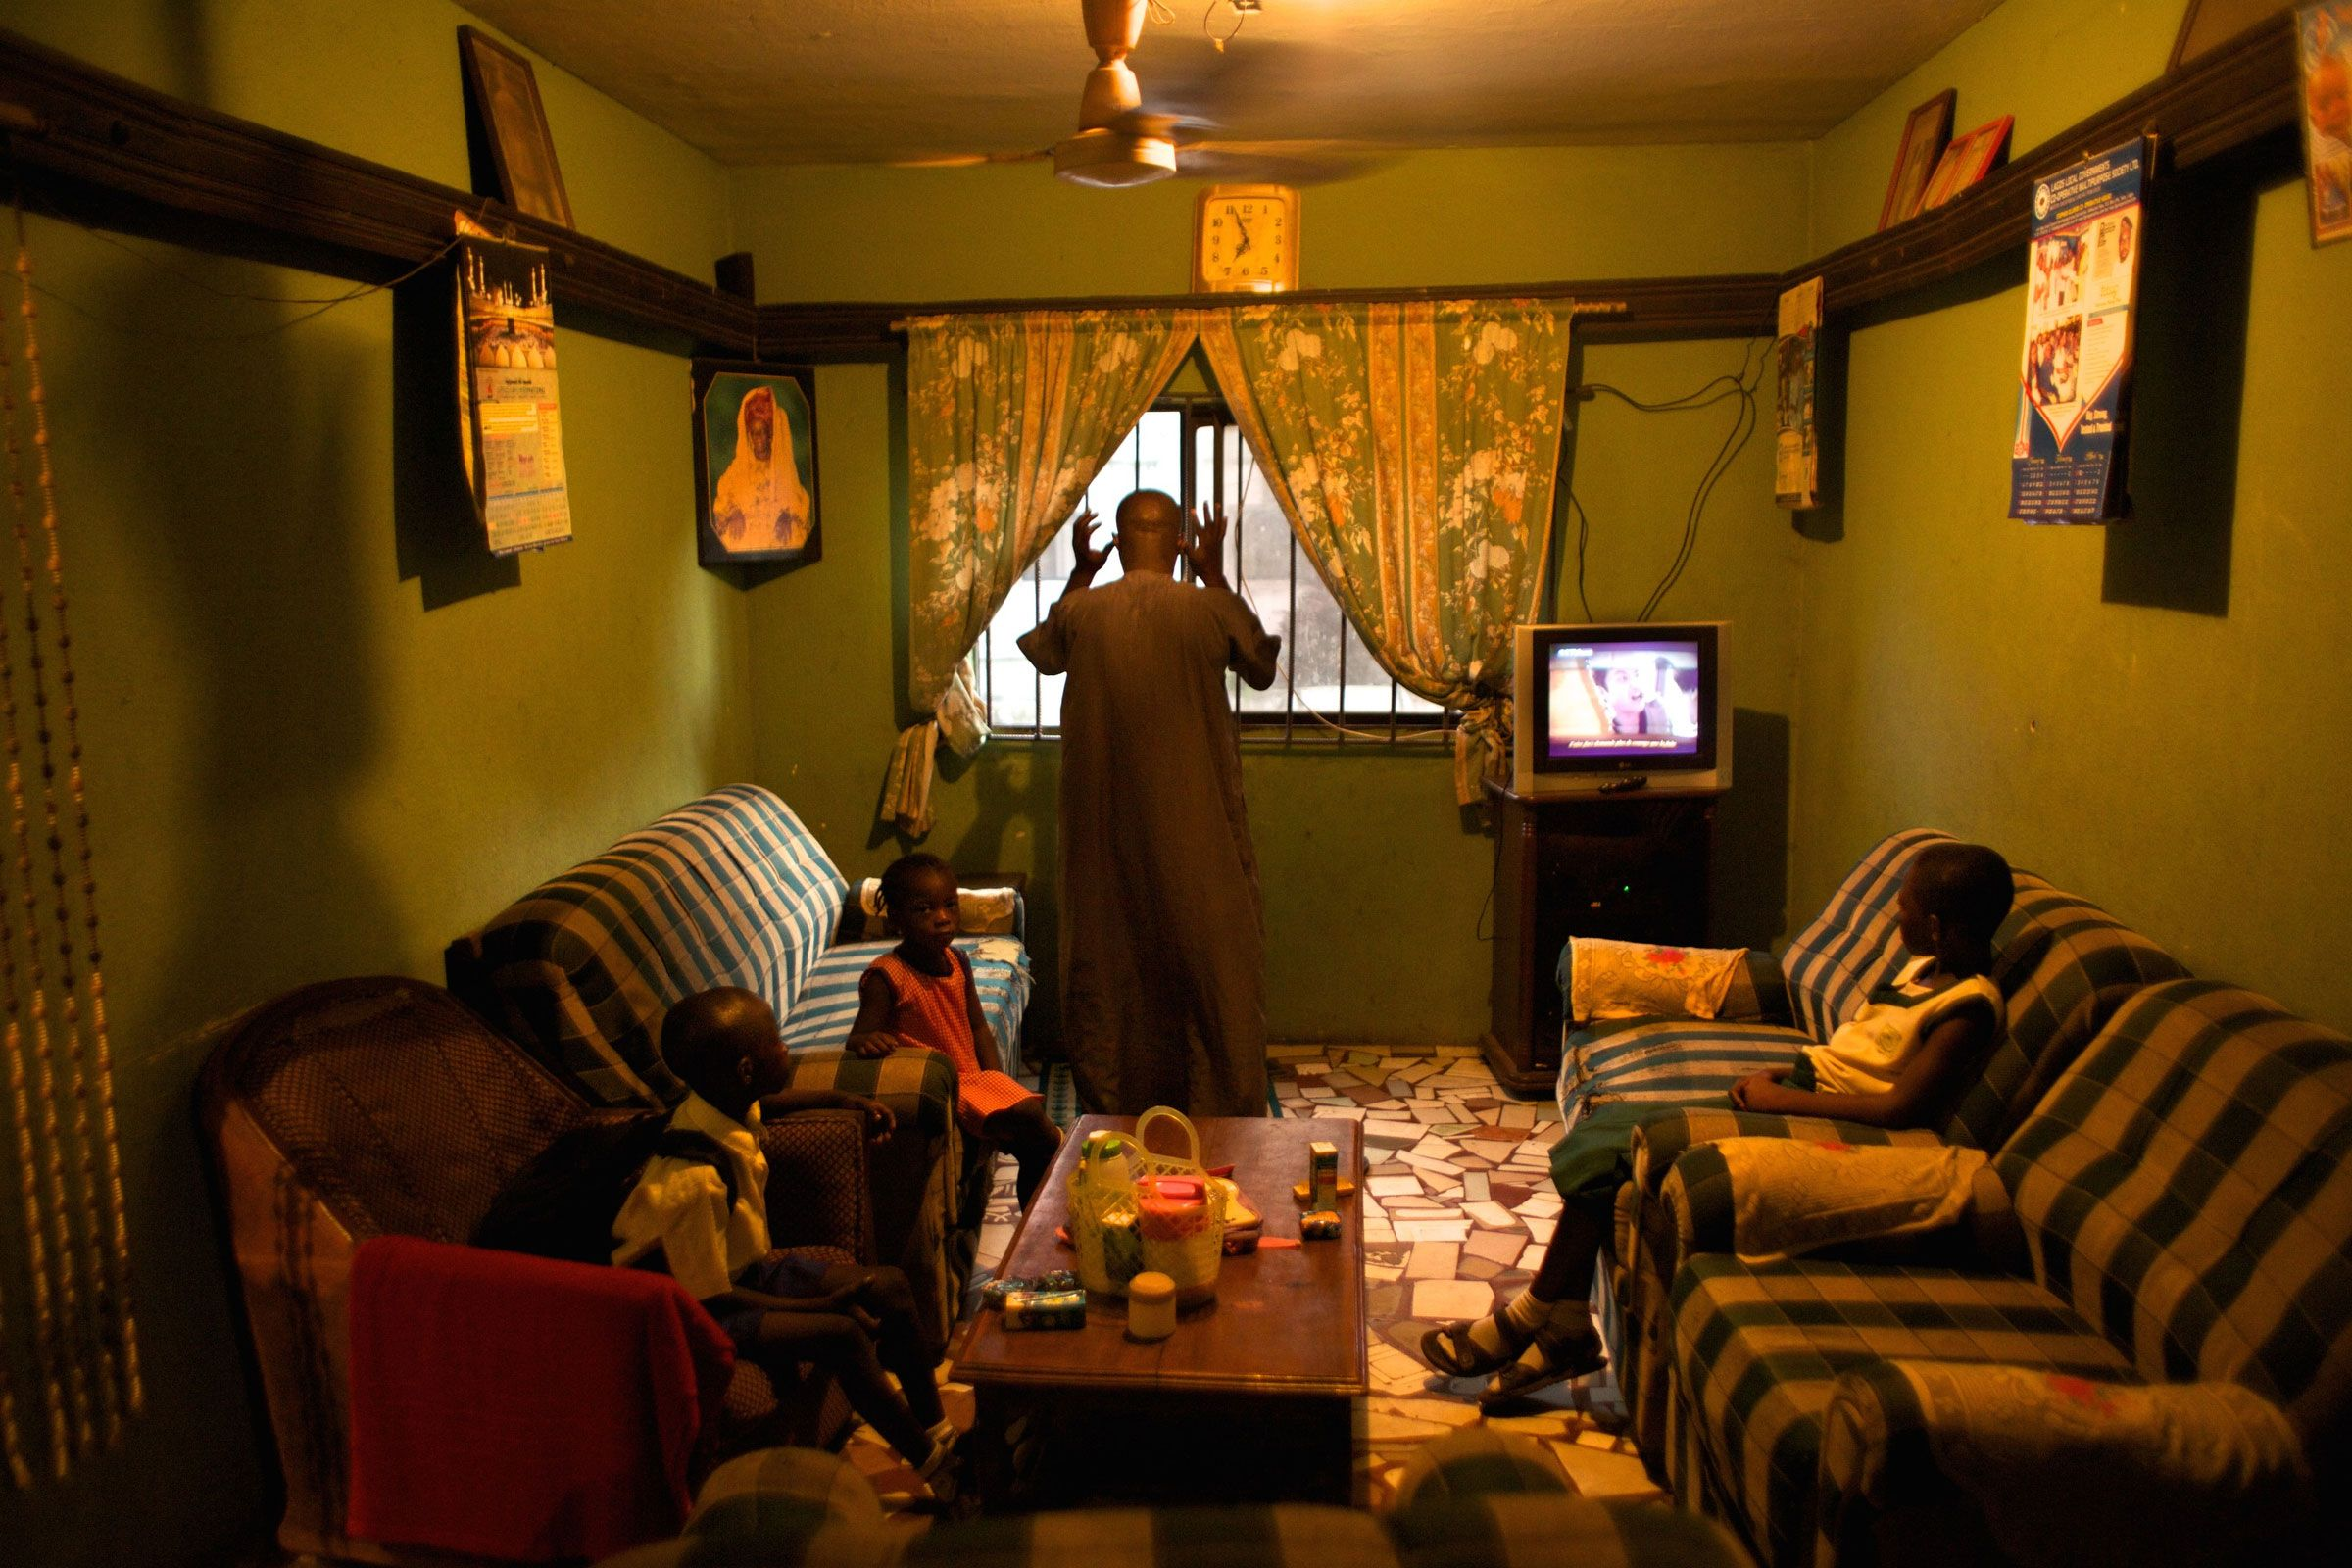 Mr Tajudeen Bakare Is Seen At His Family S Home In Dolphin Estate With His Daughter Hazeezat Bakare 11 Son Hamzat Bakare 8 And Daughter Hammeerat B Spazi